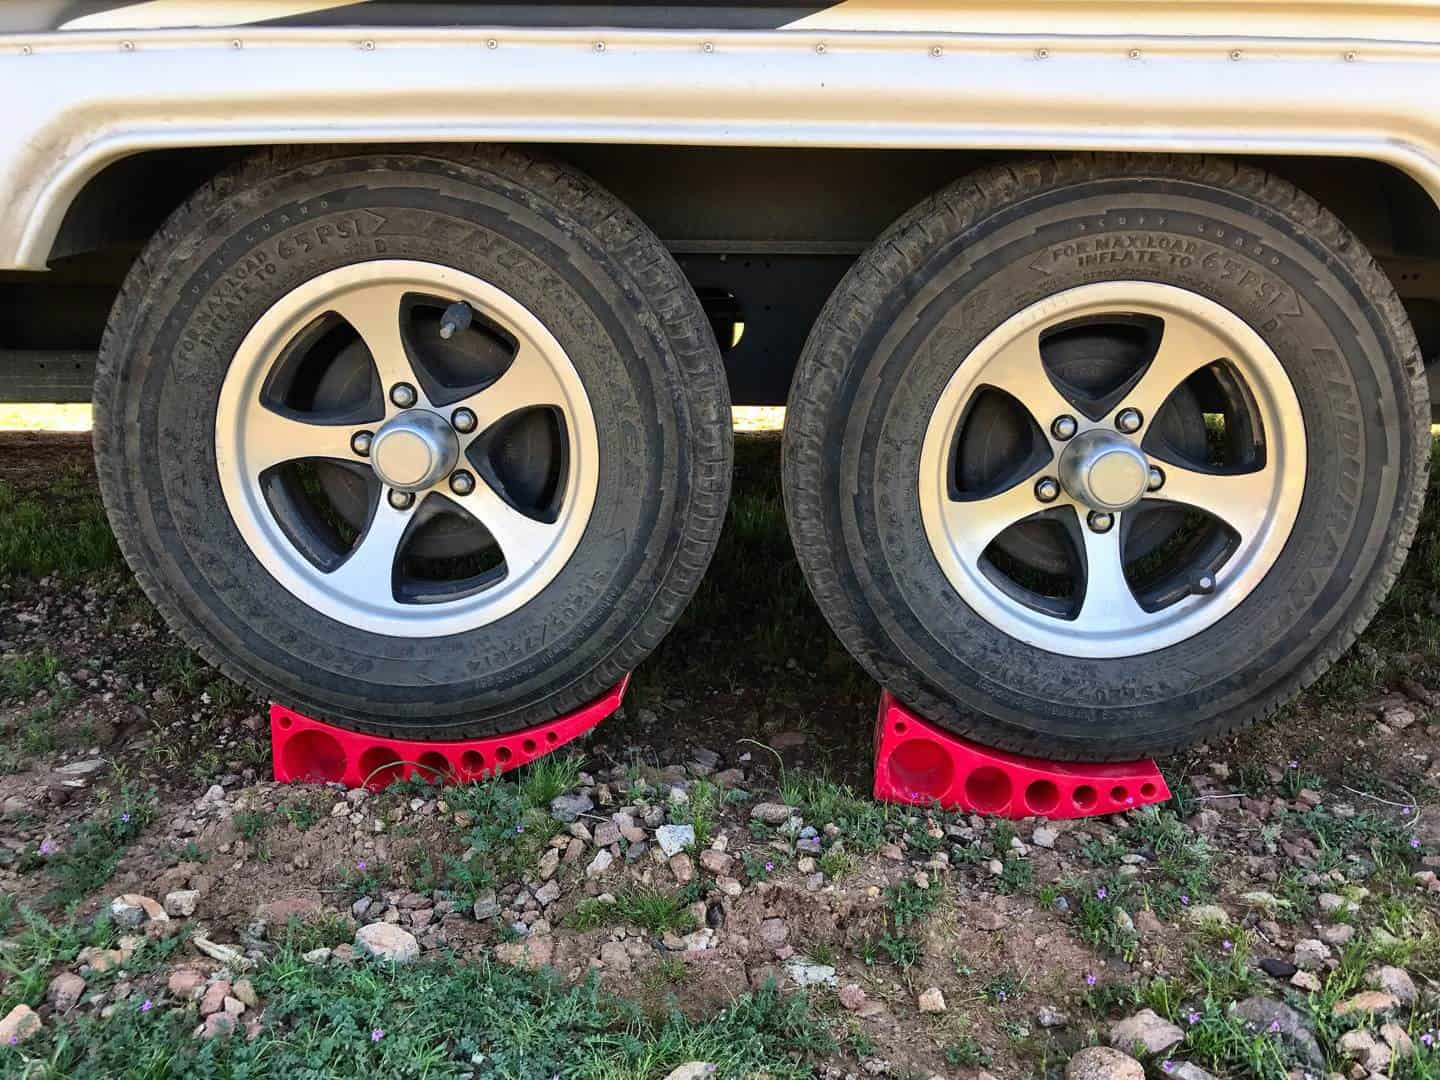 Homeon Wheels 2 Pack Camper Leveler Two Curved Levelers Two Blocks Two Non-Slip Mats One T Level for Trailers Campers 35,000 lb Heavy Duty Leveler Tire Chocks for RV Camper Trailer Truck Motorhome